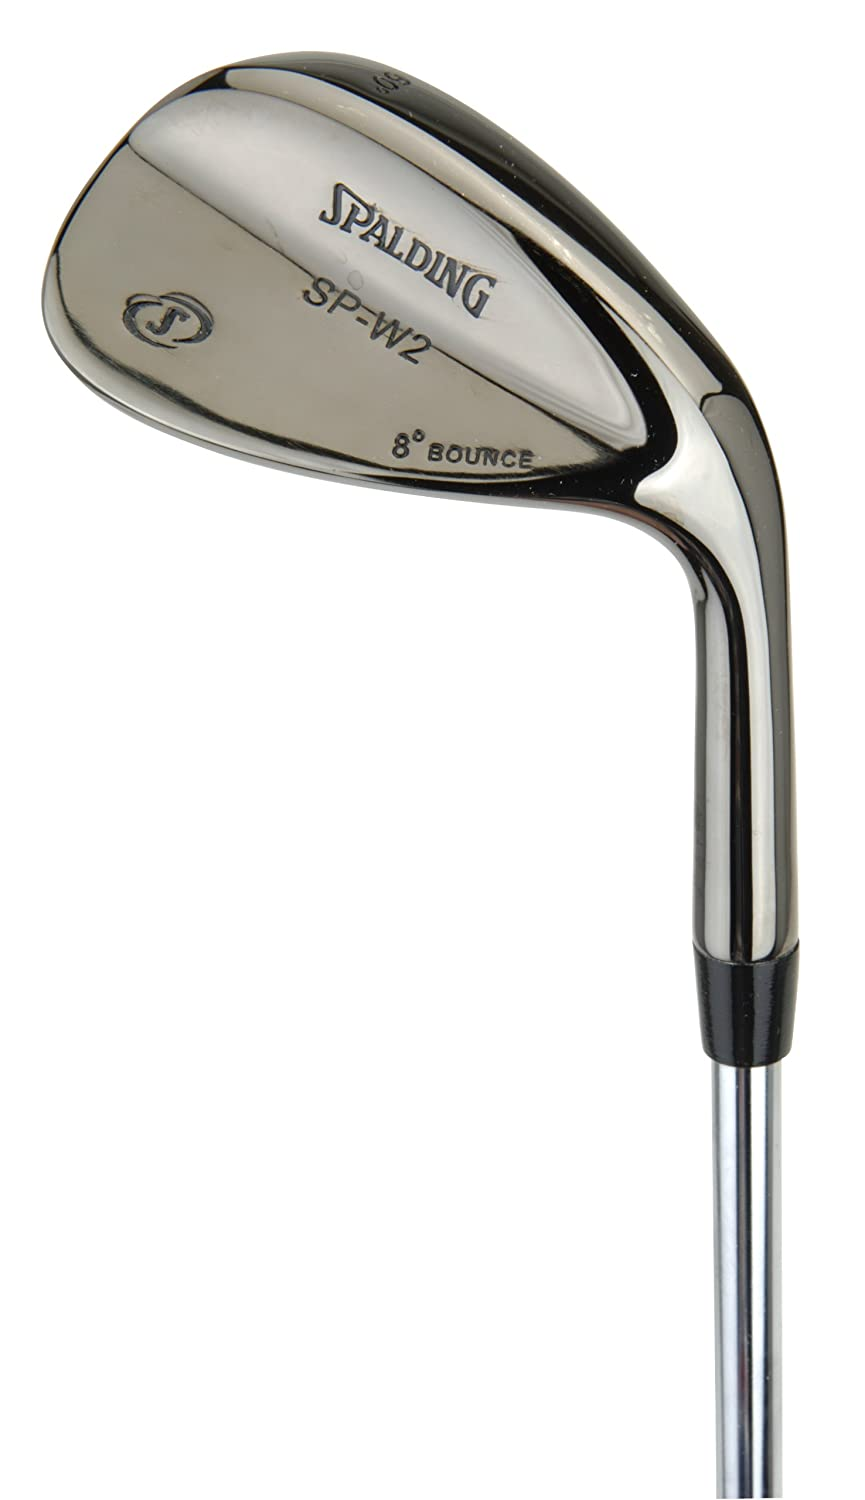 Spalding SP-W2 - Lob wedge de golf (acero inoxidable, gun ...